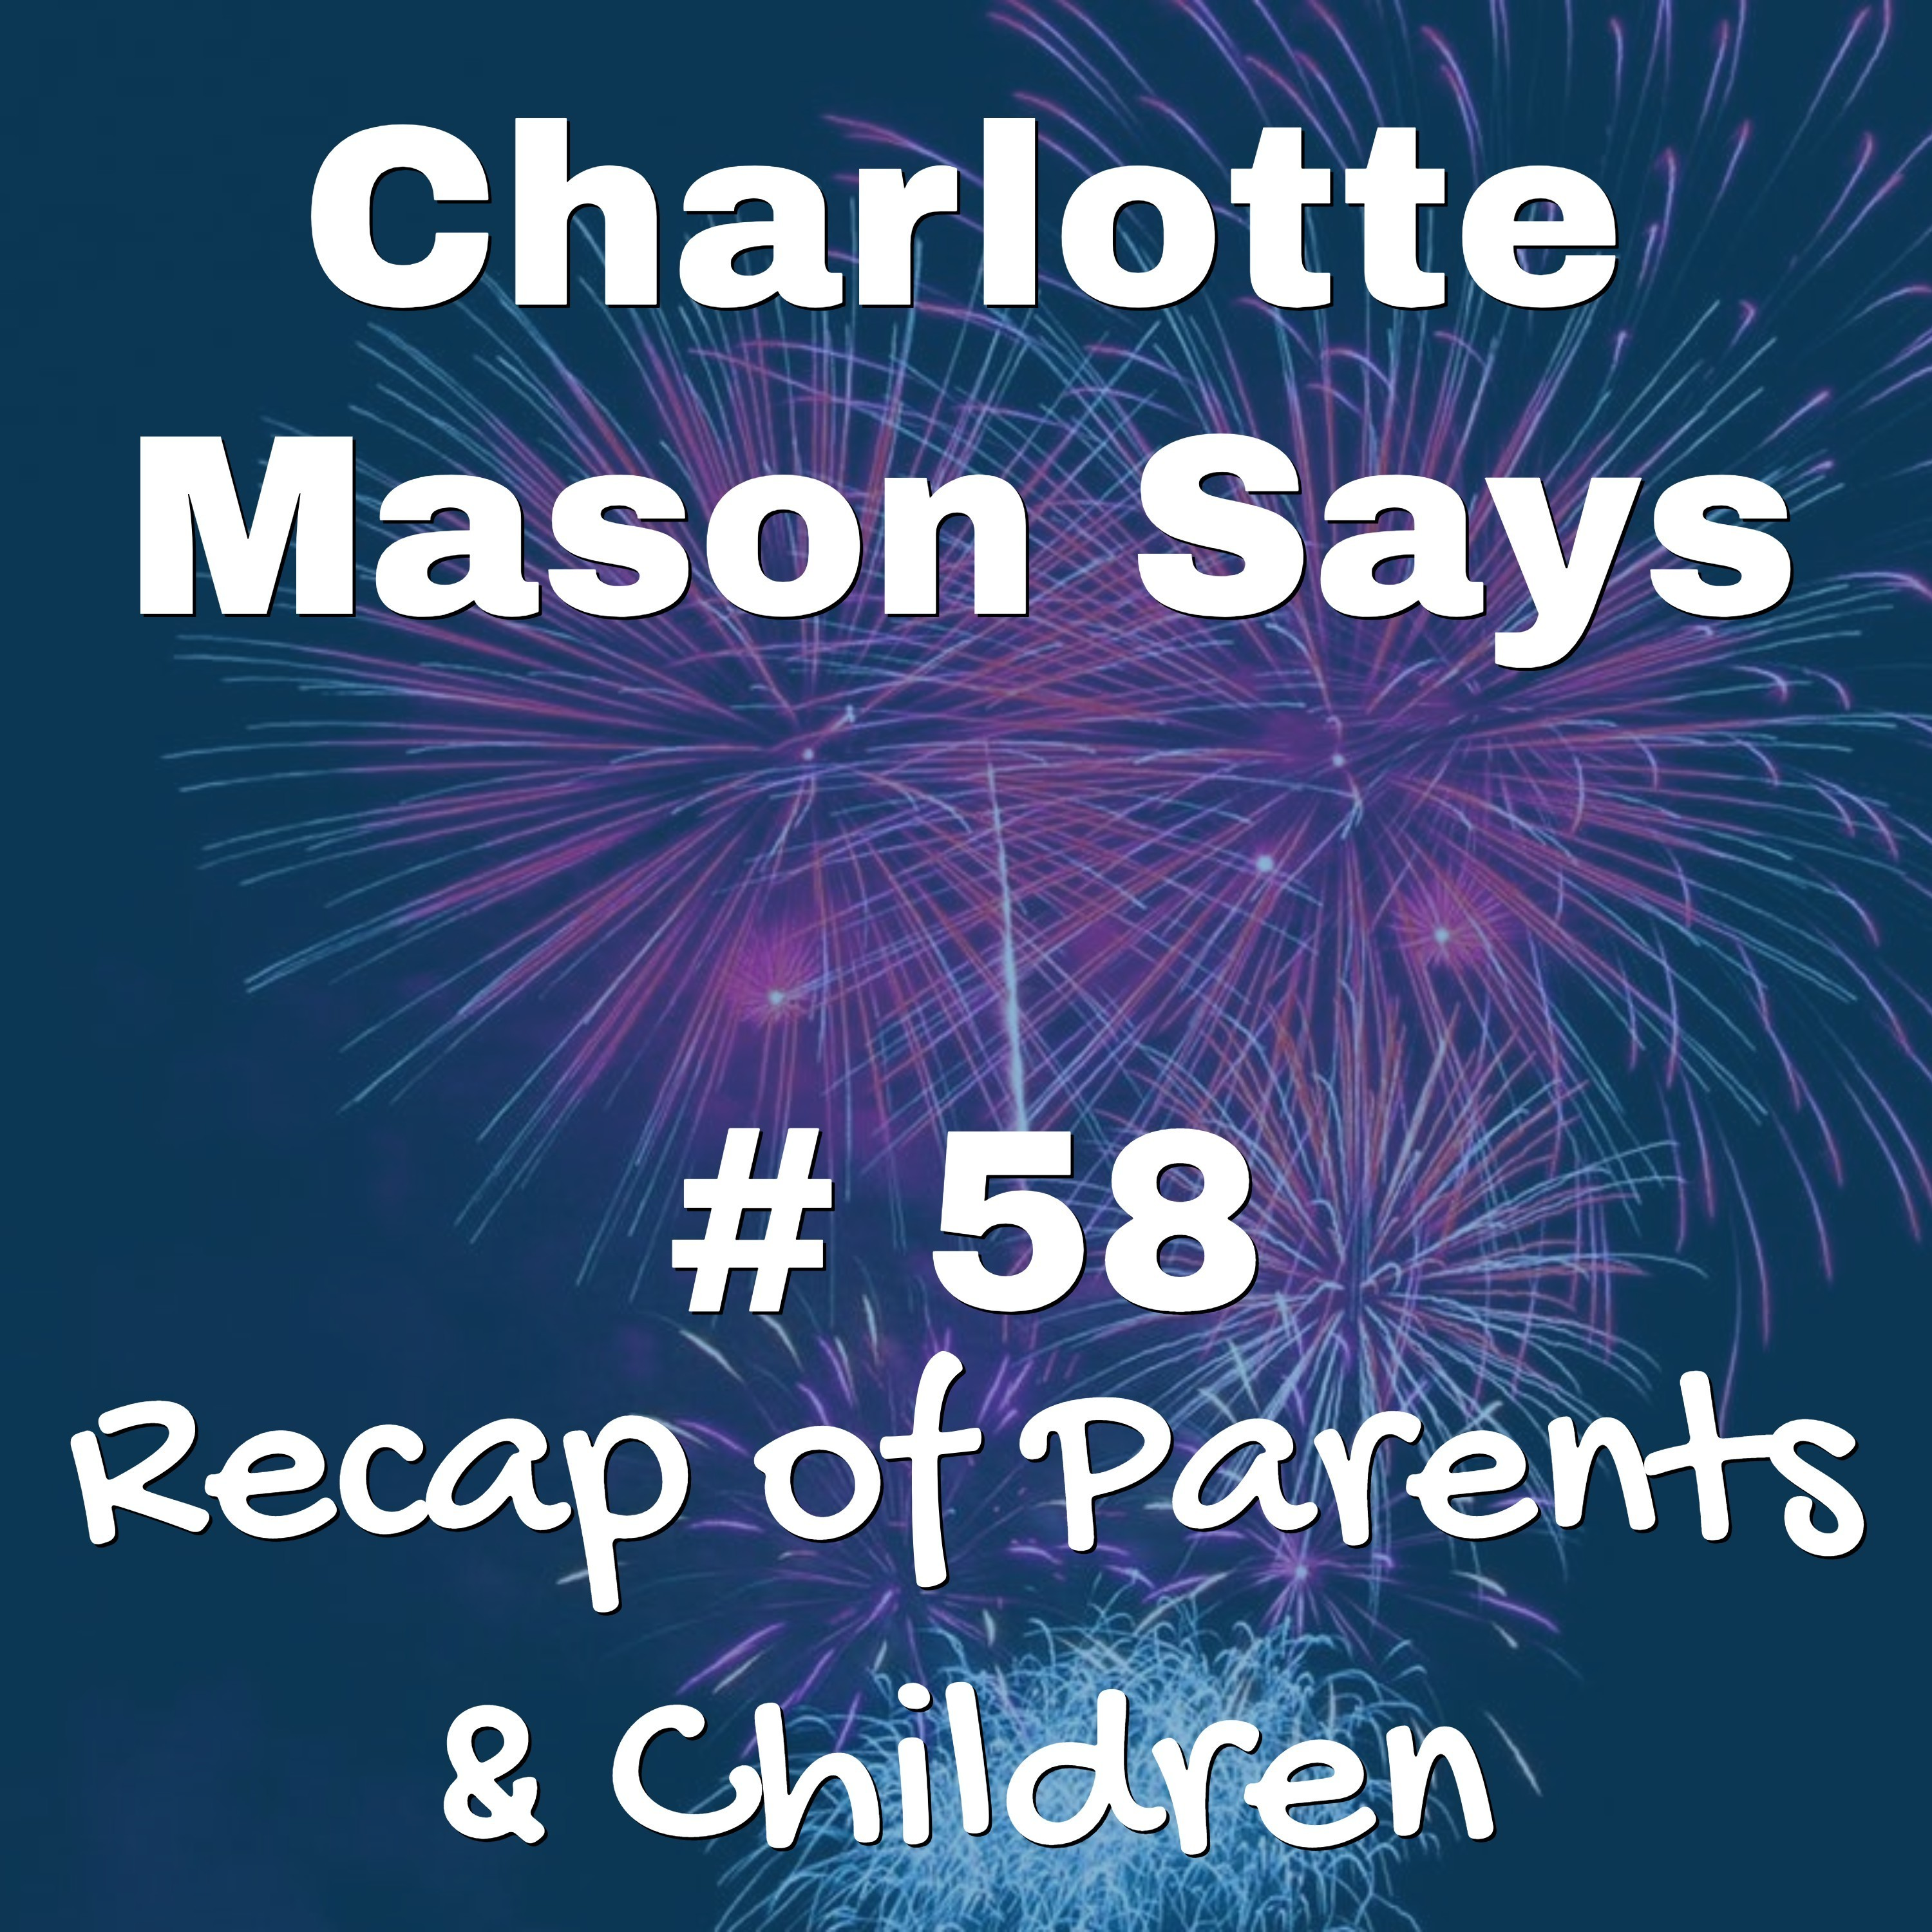 Episode 58: Recap of Parents & Children